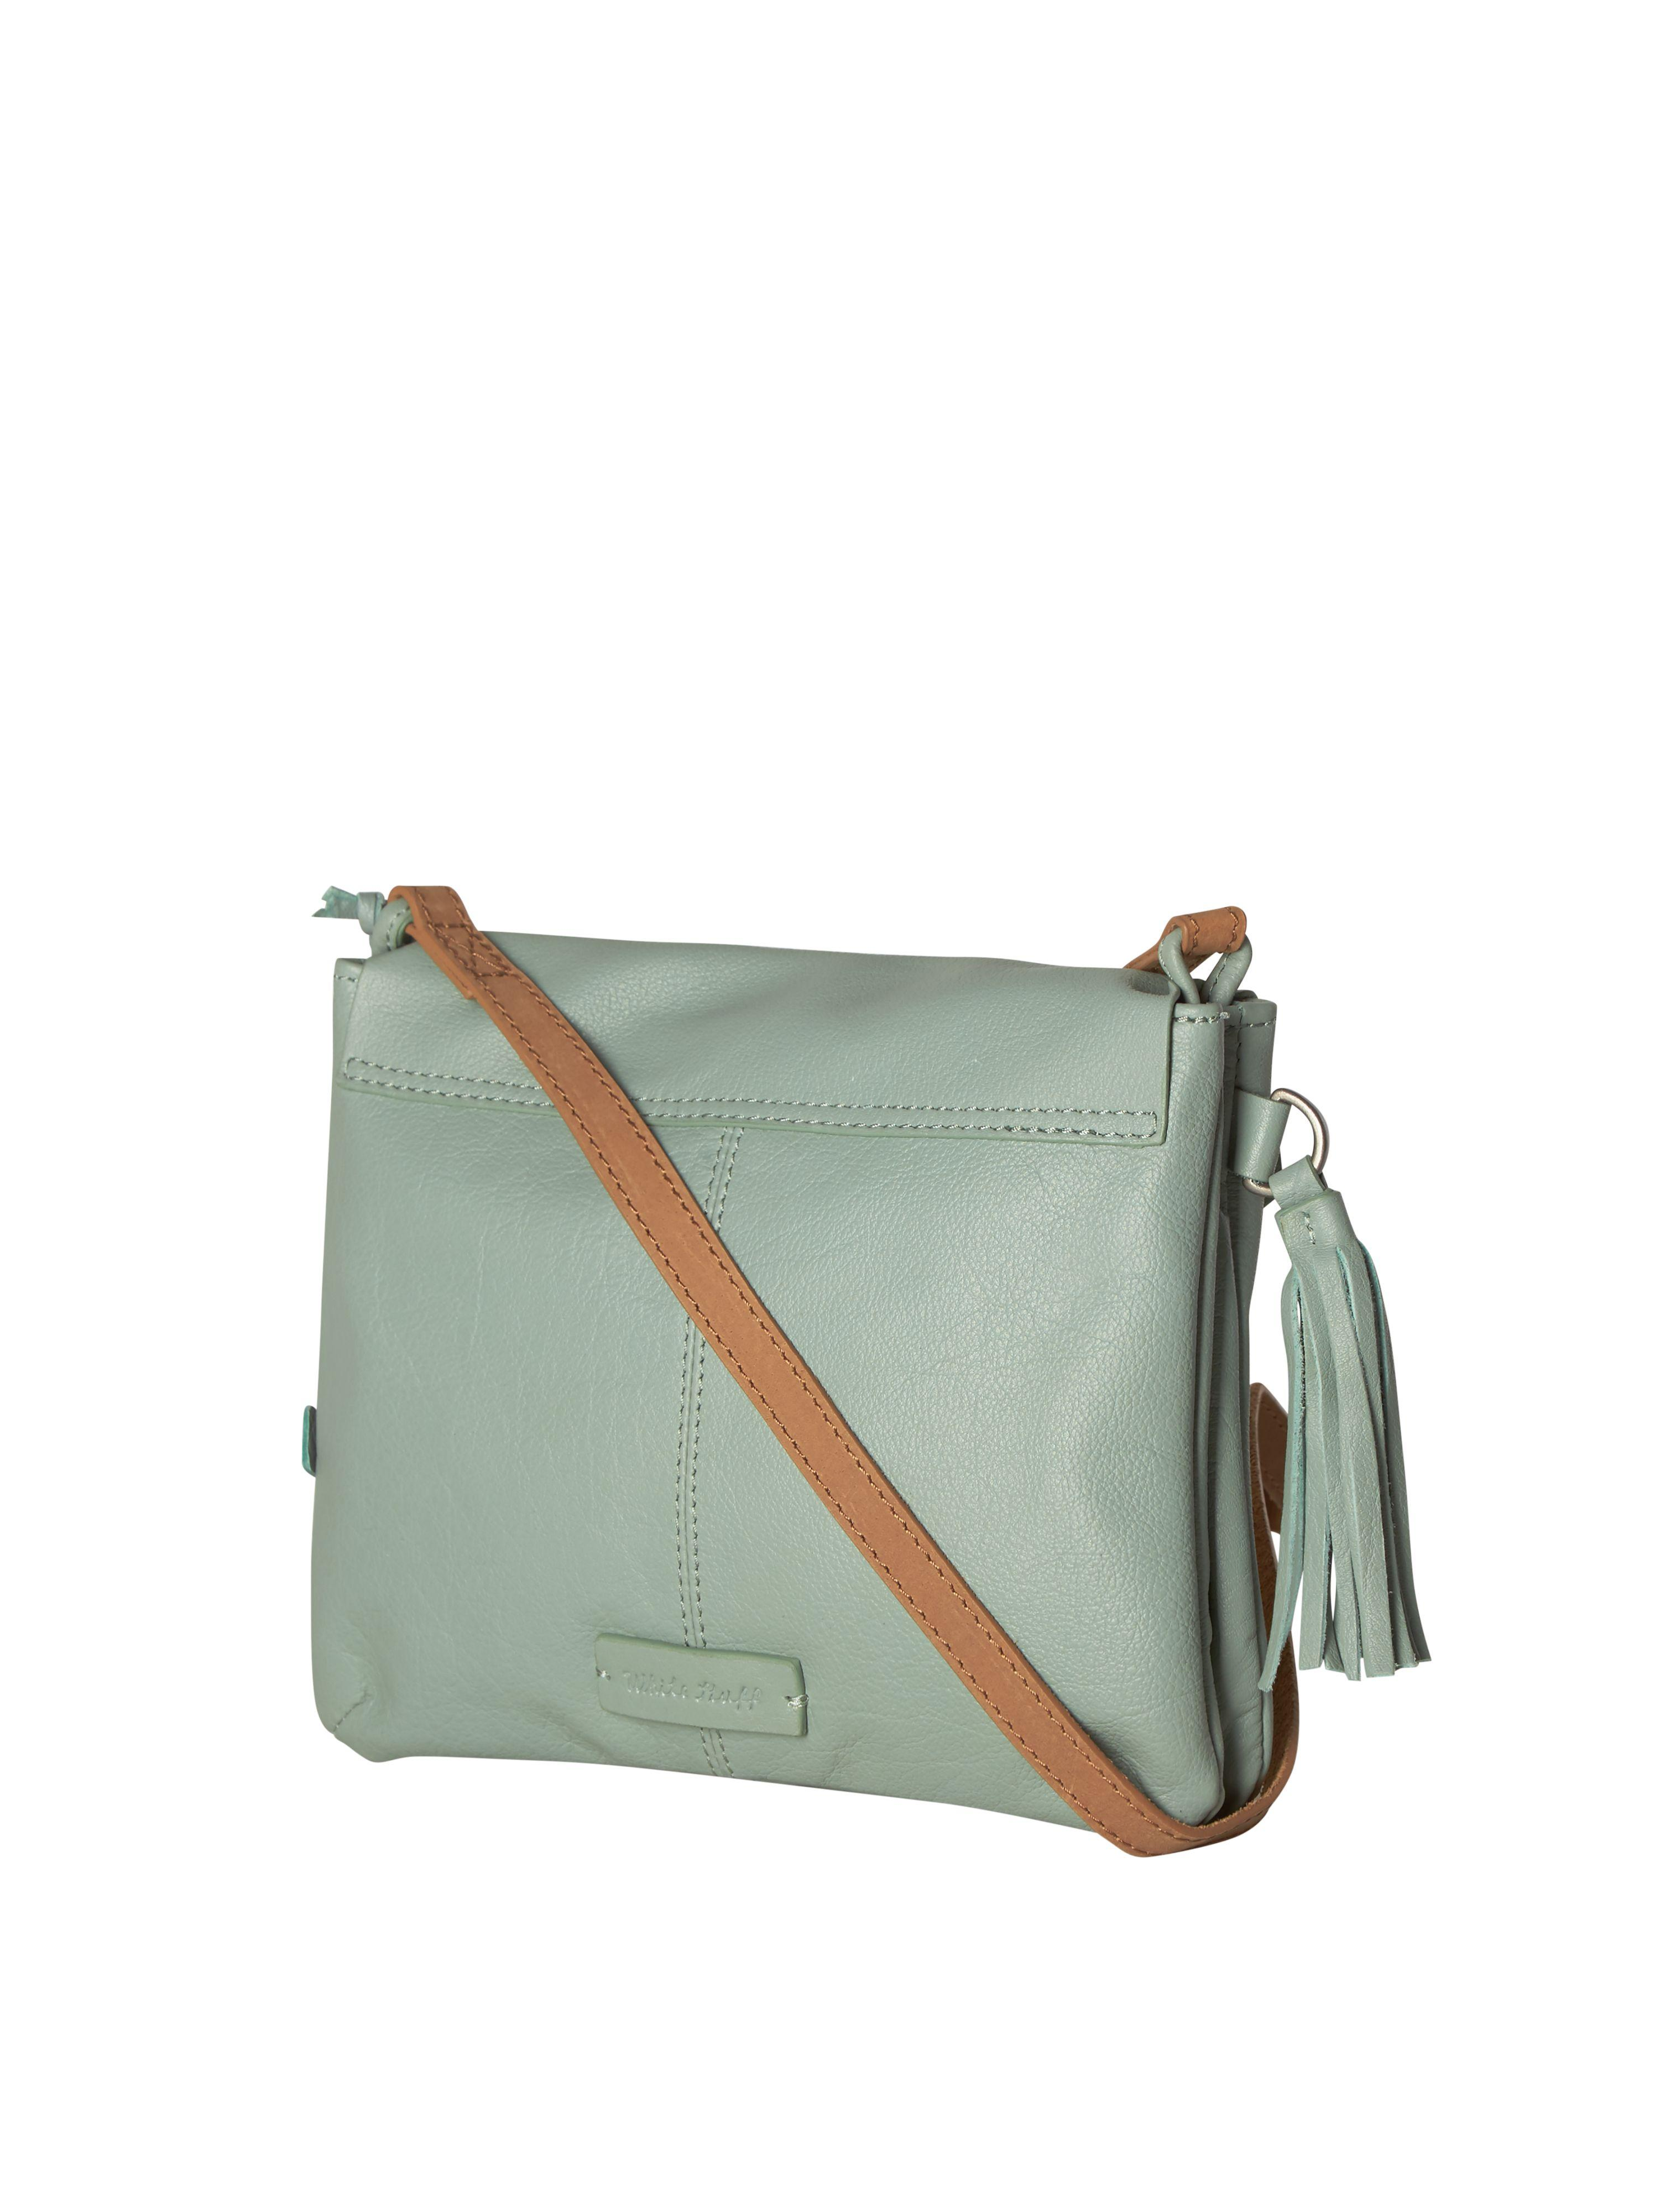 White Stuff Leather Mandy Crossbody Bag in Green